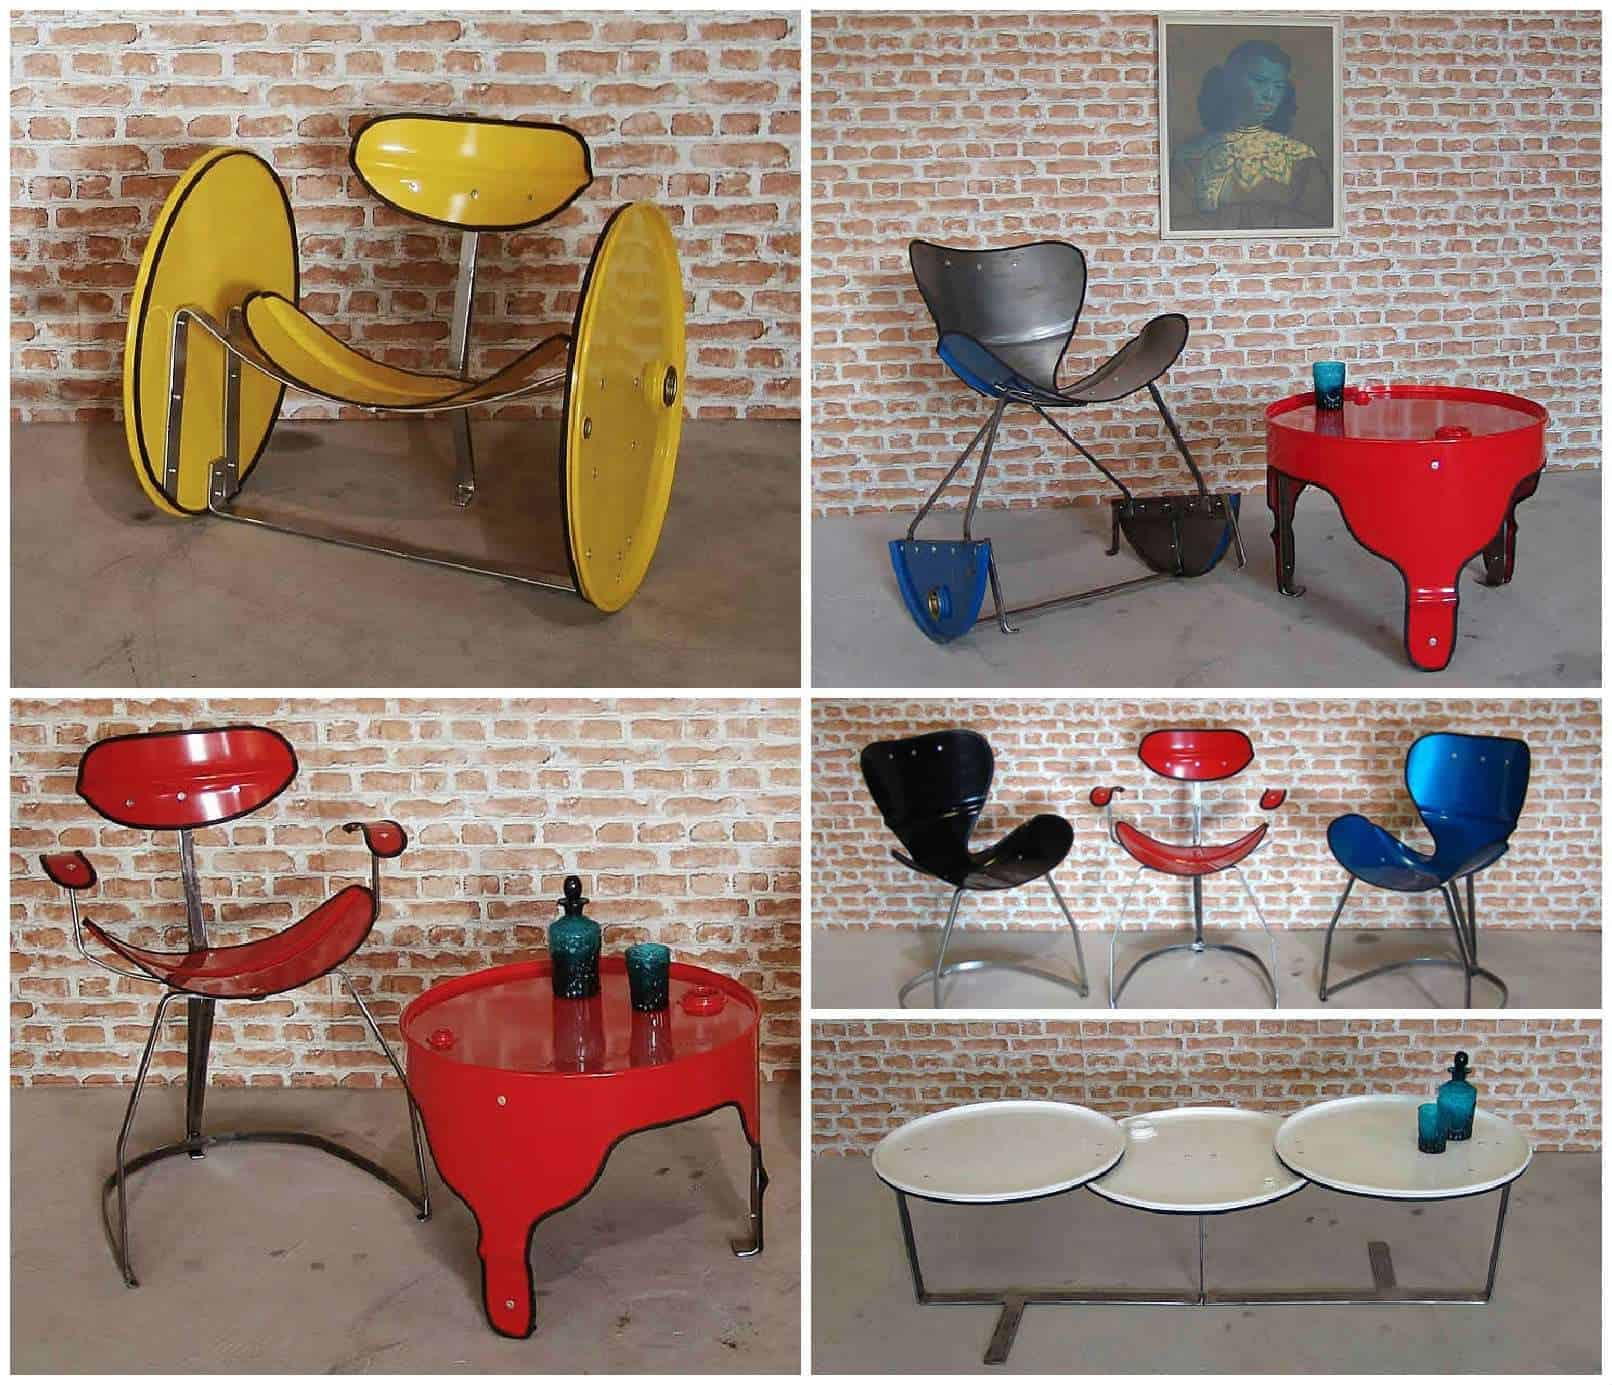 urbanite sofa bed ottoman brisbane oil drums upcycled into beautiful furniture by the